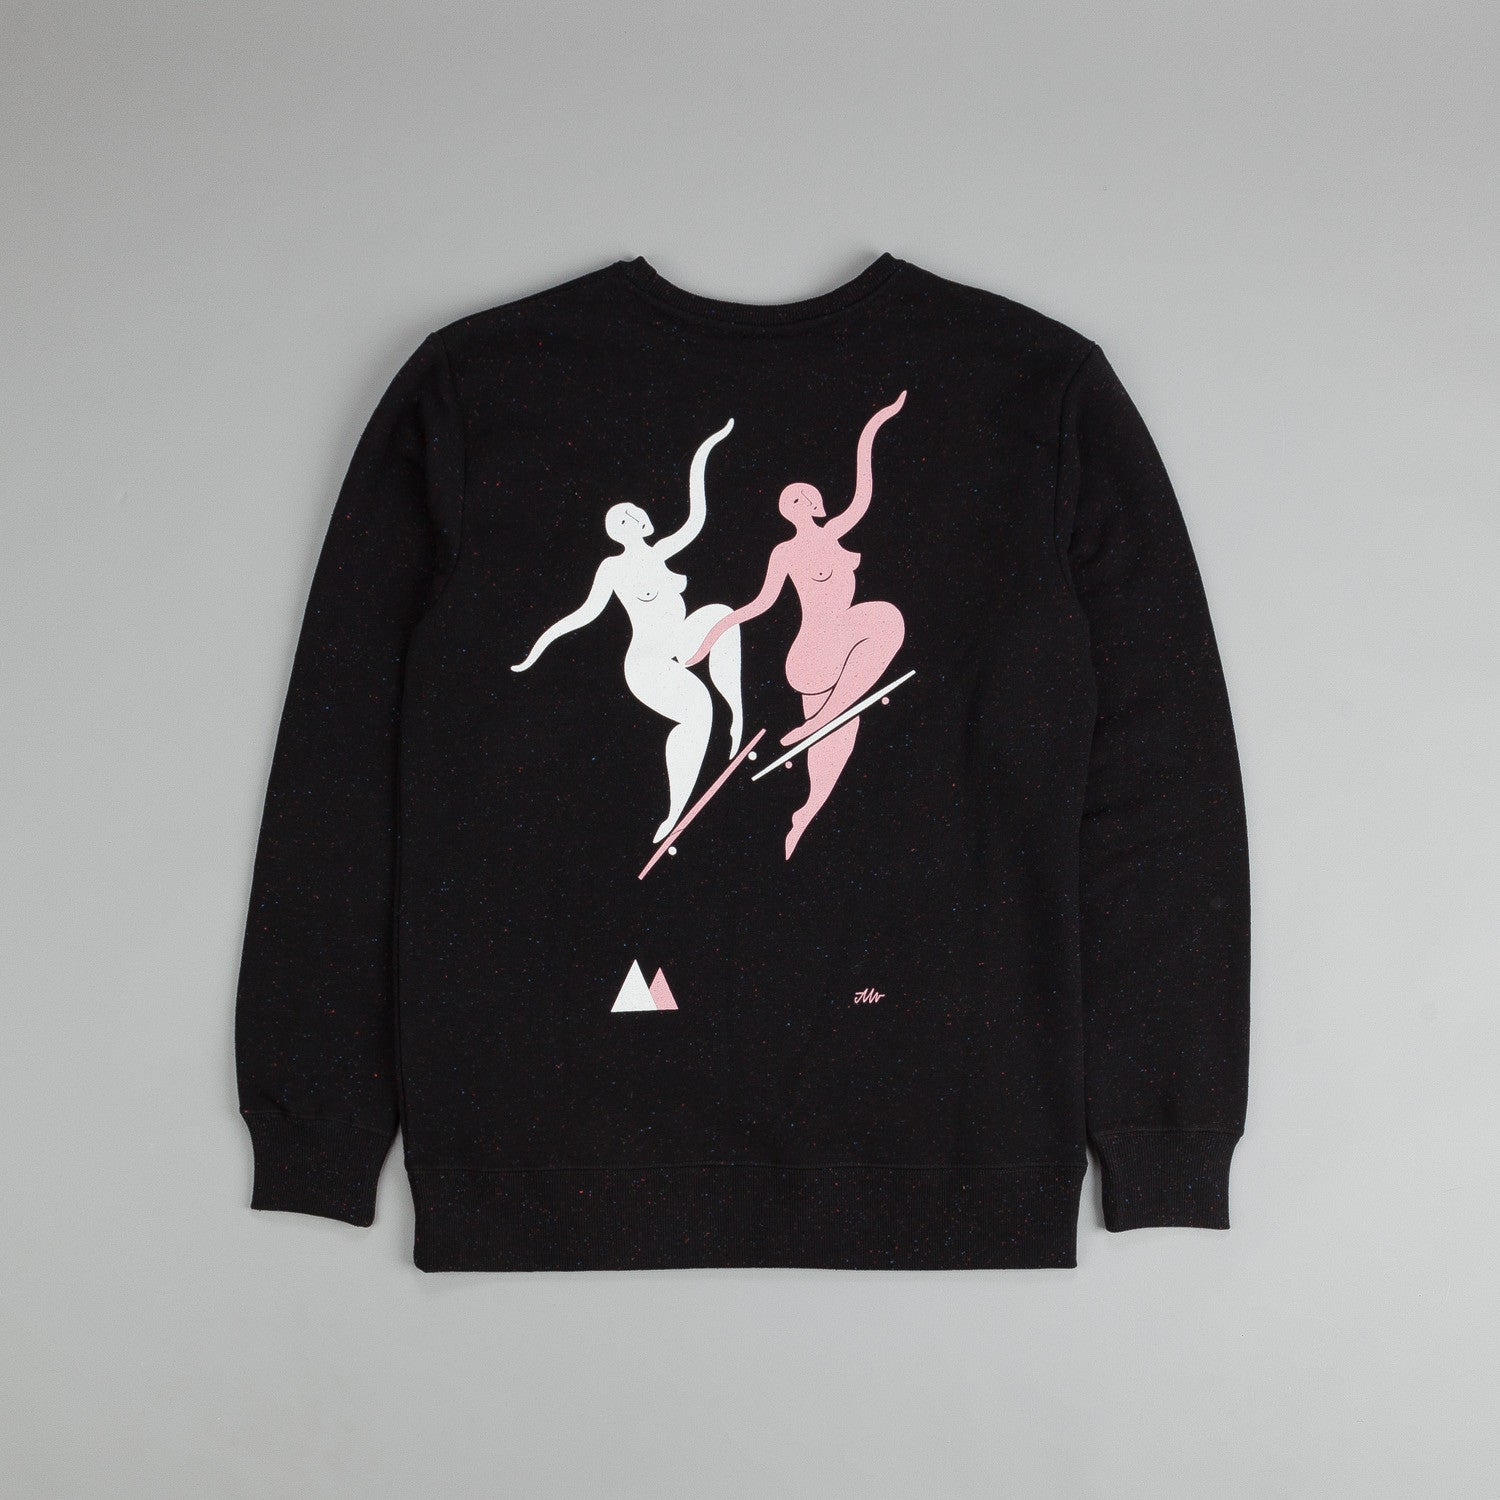 Polar Wallie & No Comply Sweatshirt Black / White - Soft Pink